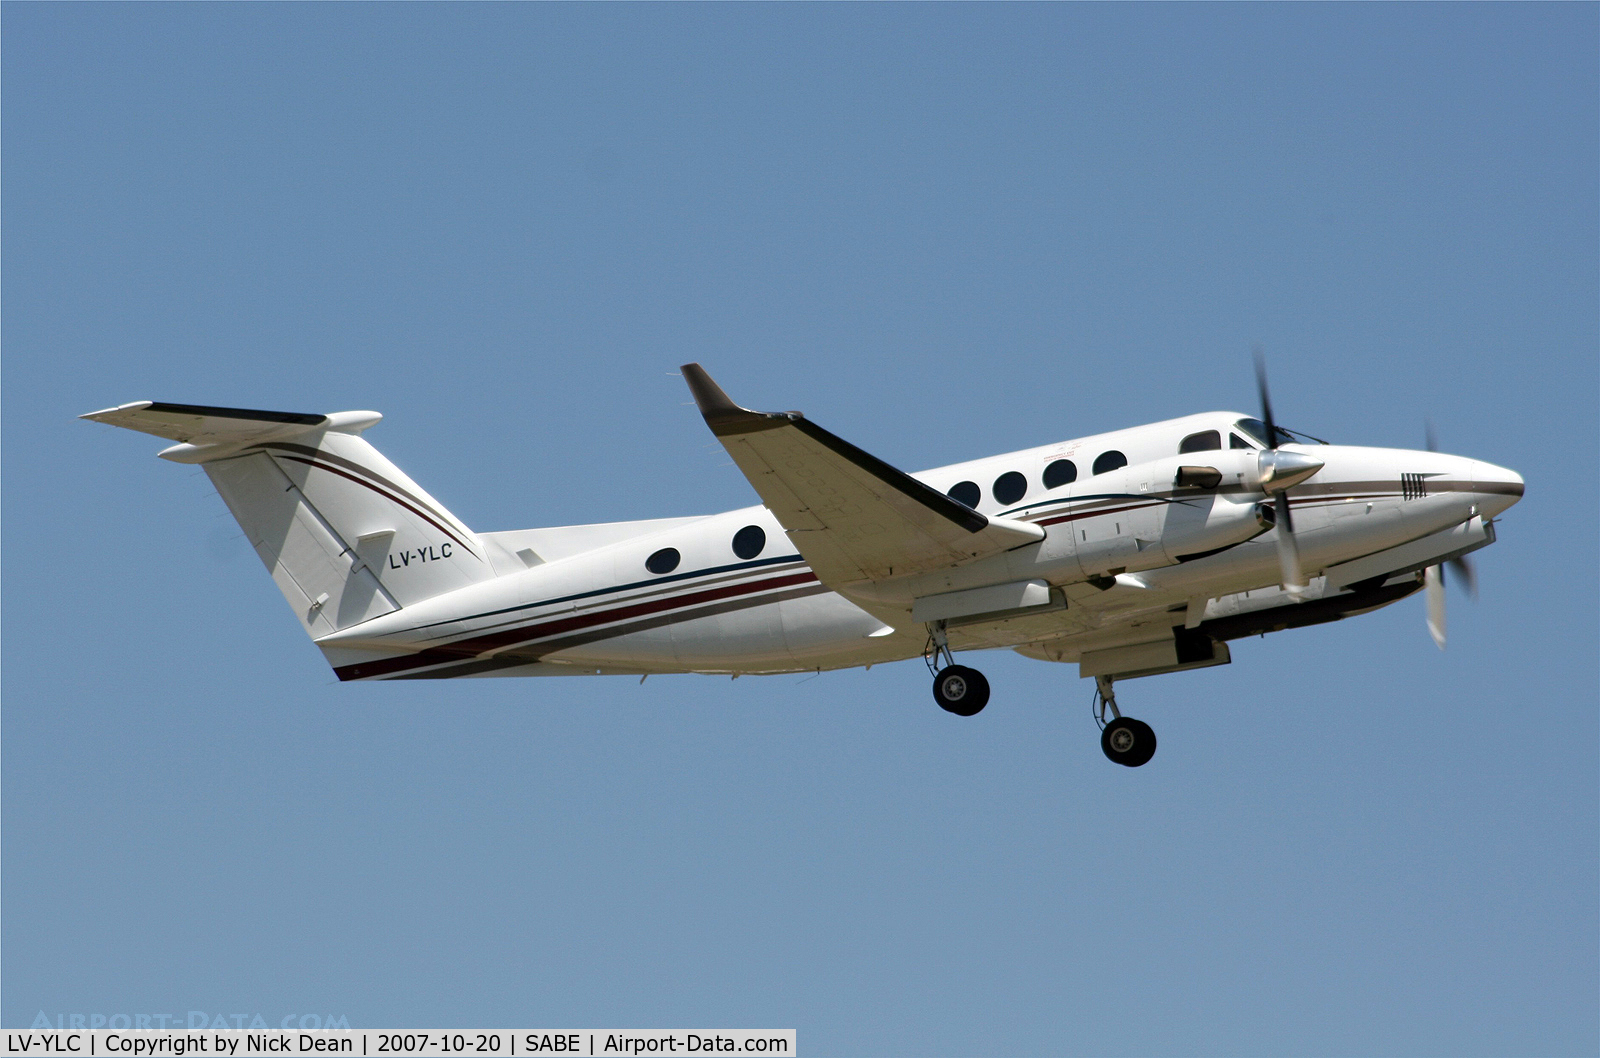 LV-YLC, 1998 Beechcraft King Air 350B C/N FL-190, SABE